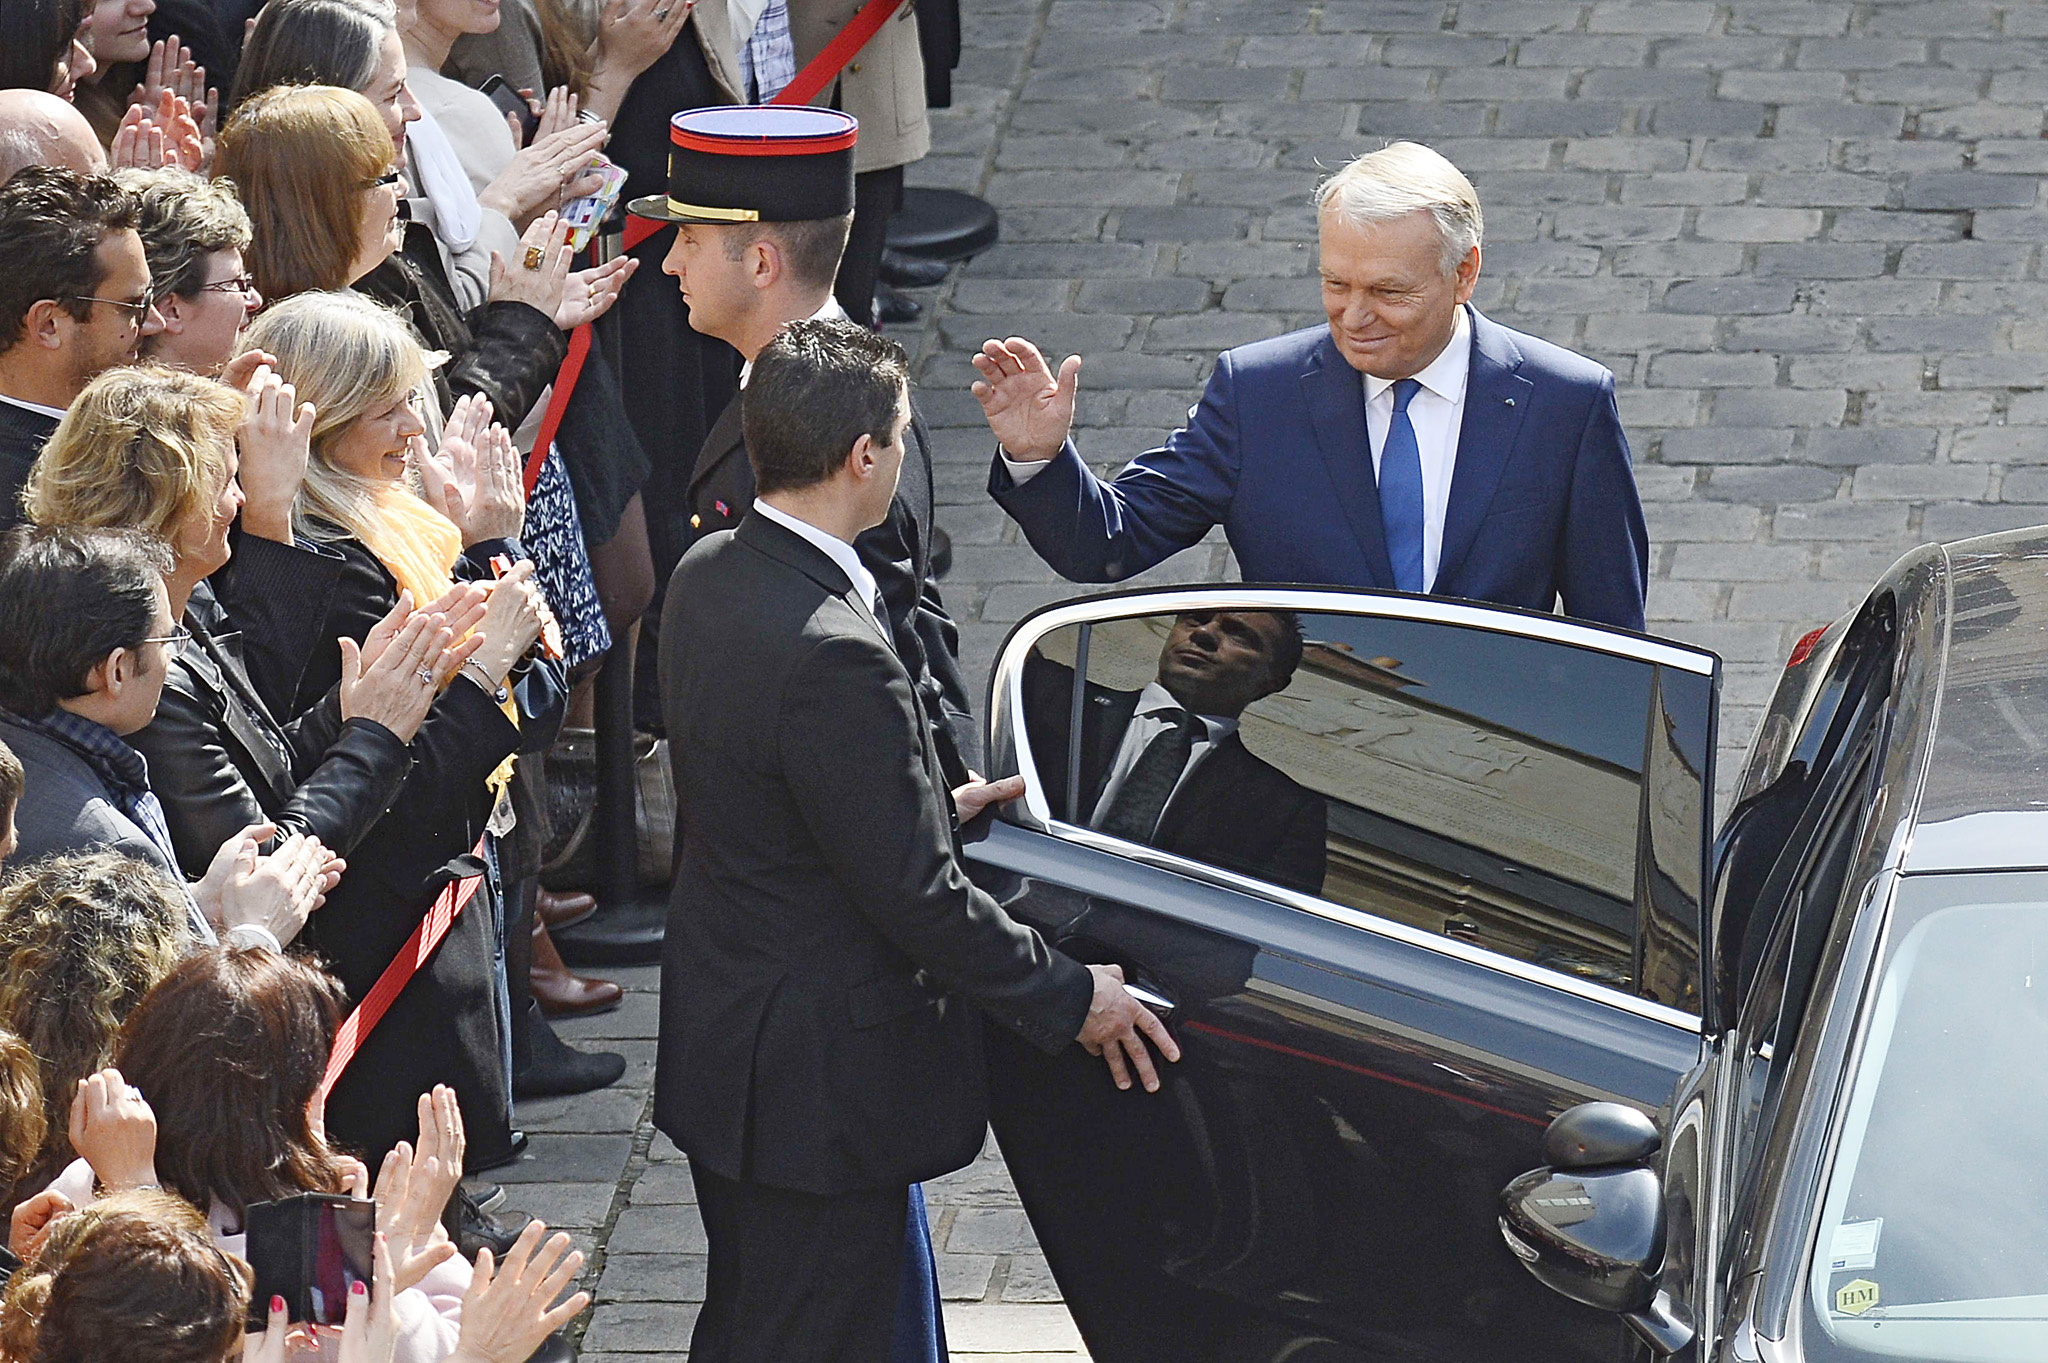 France's outgoing Prime minister Jean-Ma...France's outgoing Prime minister Jean-Marc Ayrault (R) waves as he leaves the Hotel Matignon after the take over ceremony, on April 1, 2014 at in Paris. France's new Prime Minister Manuel Valls faced a delicate balancing act as he set about forming a new government tasked with reviving the economy and reining in public financesAFP PHOTO / LIONEL BONAVENTURELIONEL BONAVENTURE/AFP/Getty Images